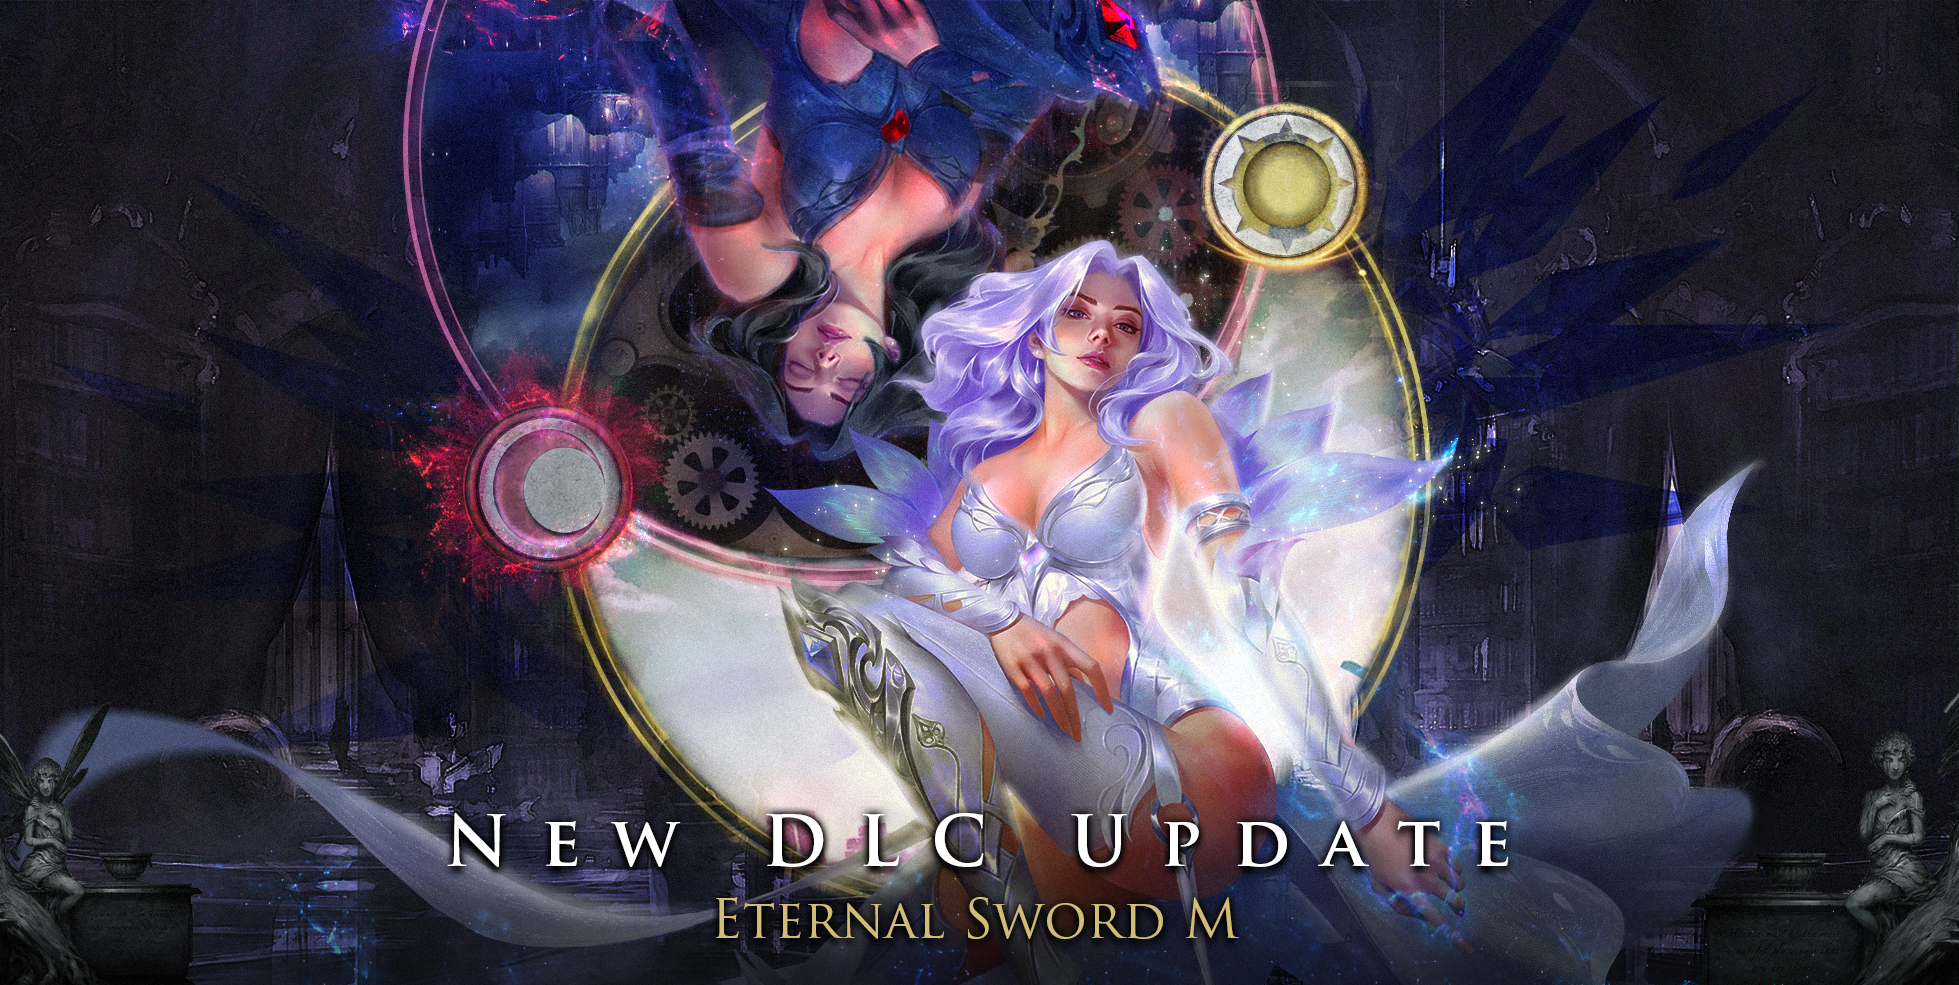 Eternal Sword M - New DLC Update: Mecha Era